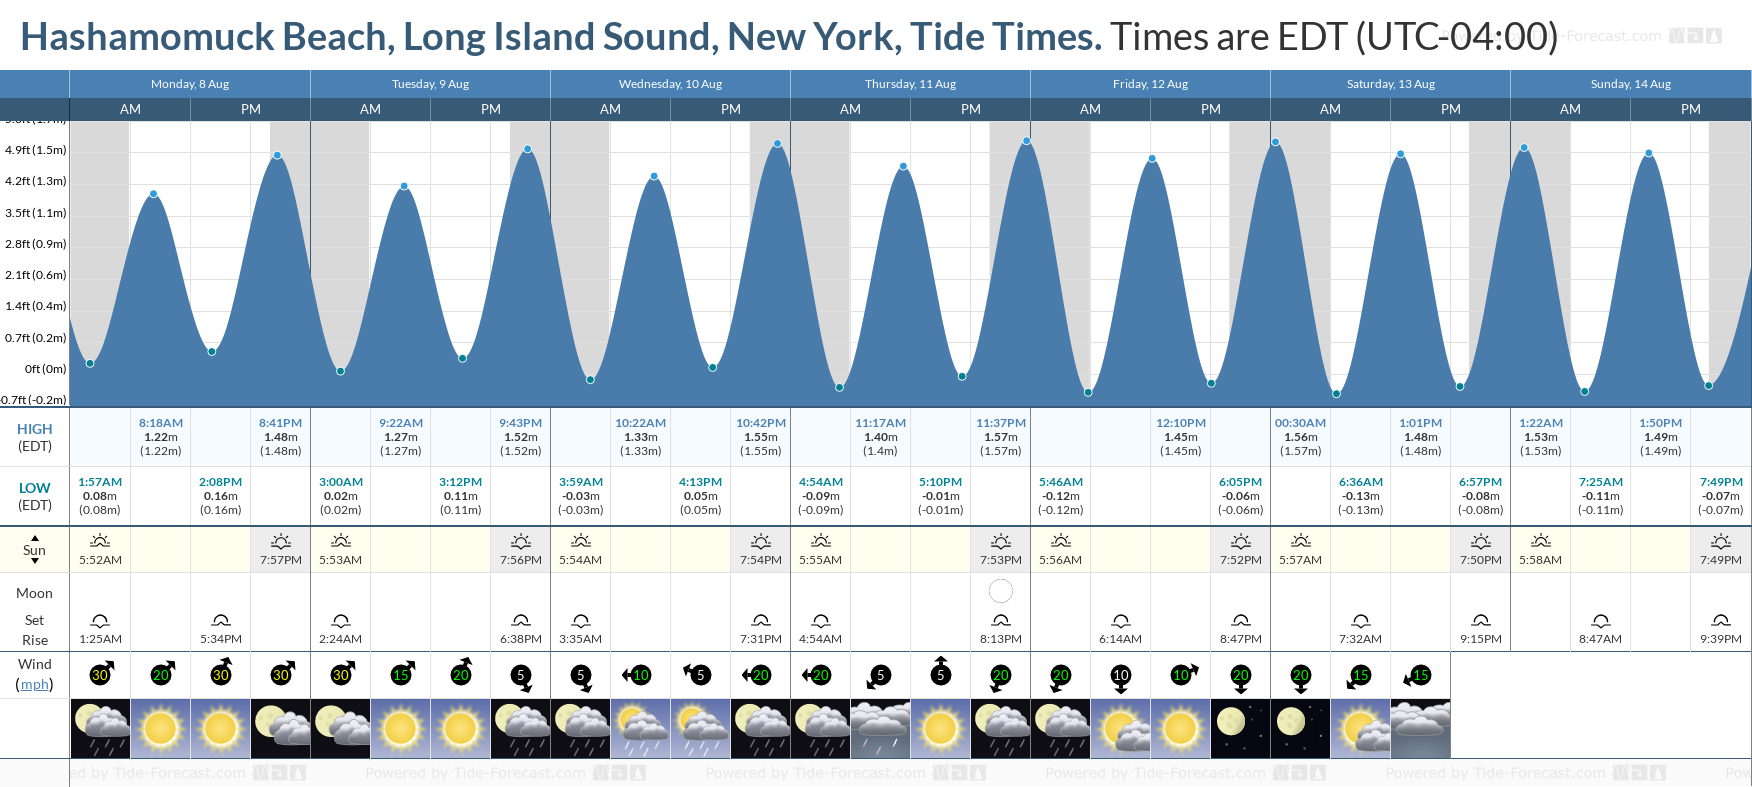 Hashamomuck Beach, Long Island Sound, New York Tide Chart including high and low tide tide times for the next 7 days